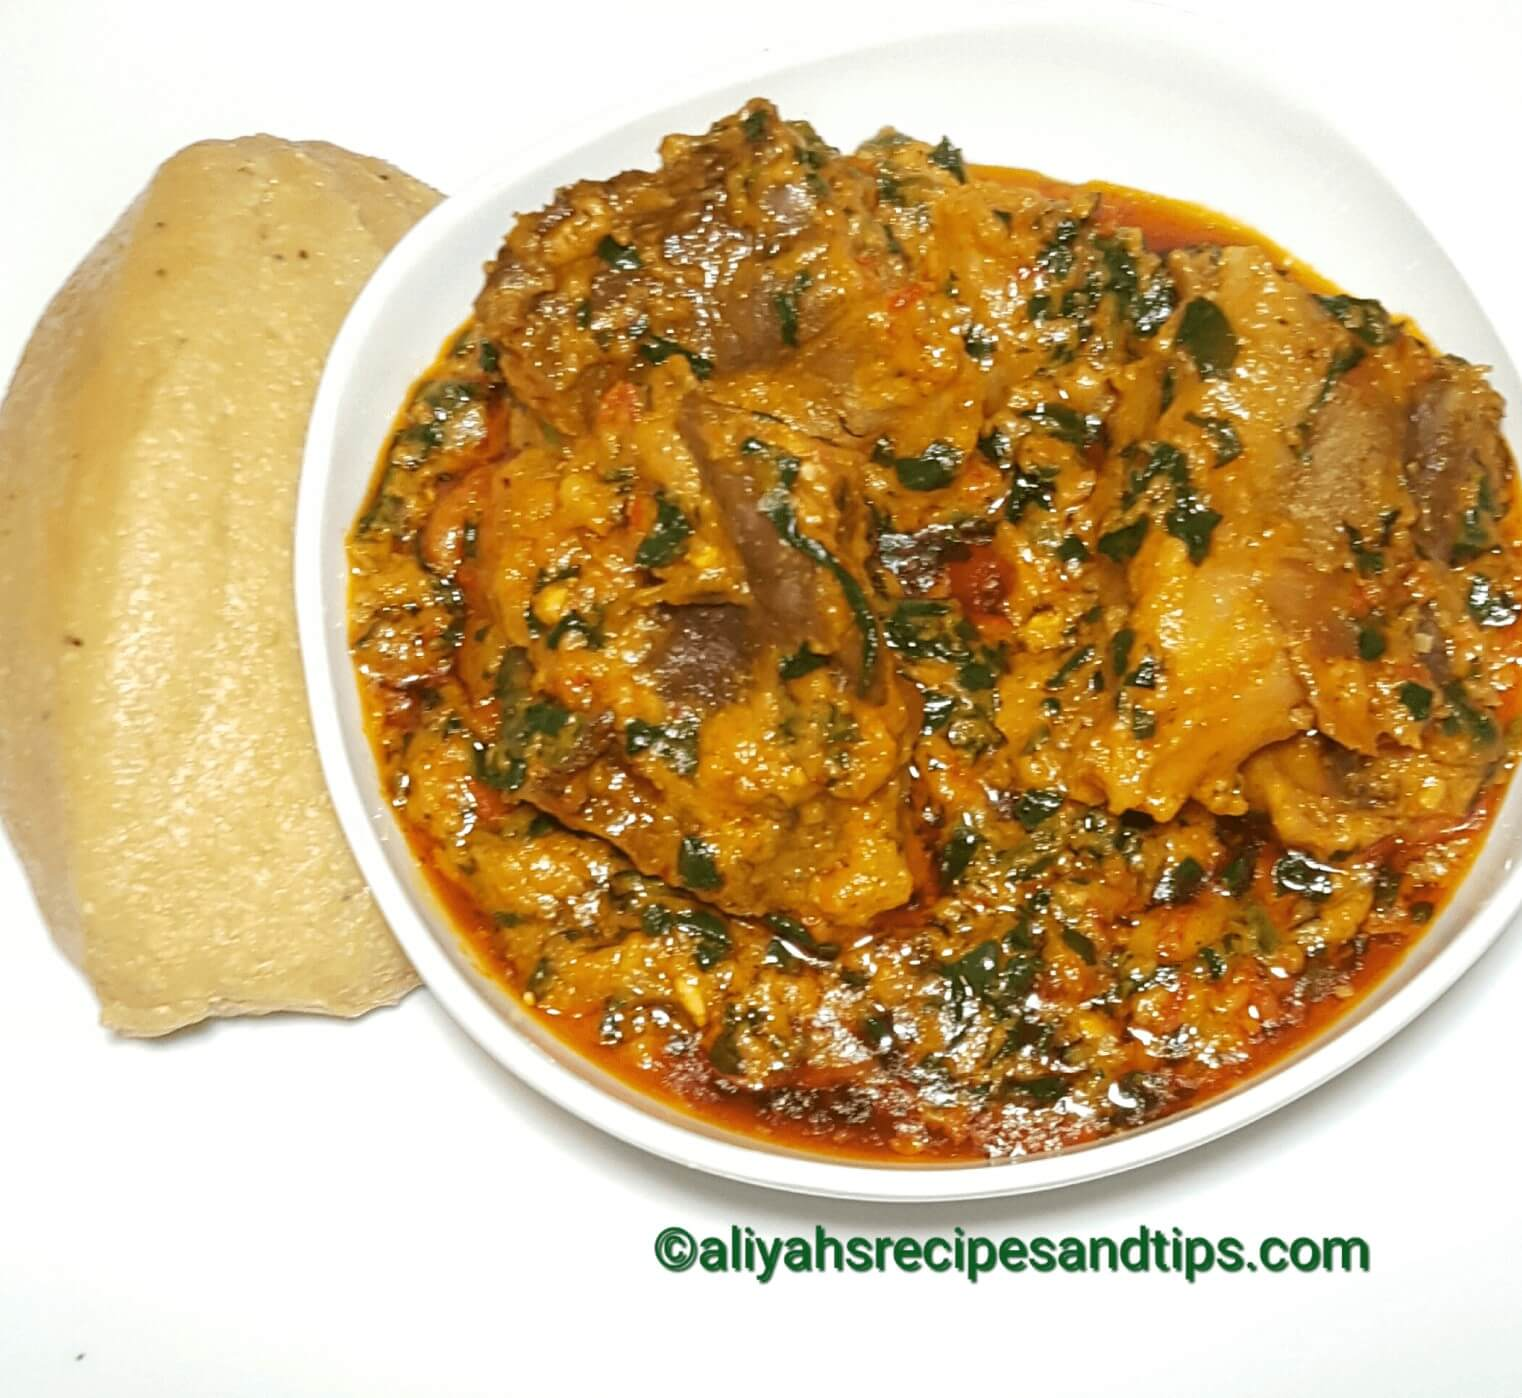 Groundnut soup, Peanut soup, Nigerian groundnut soup, Nigerian Peanut soup, West African Peanut soup, West African groundnut soup